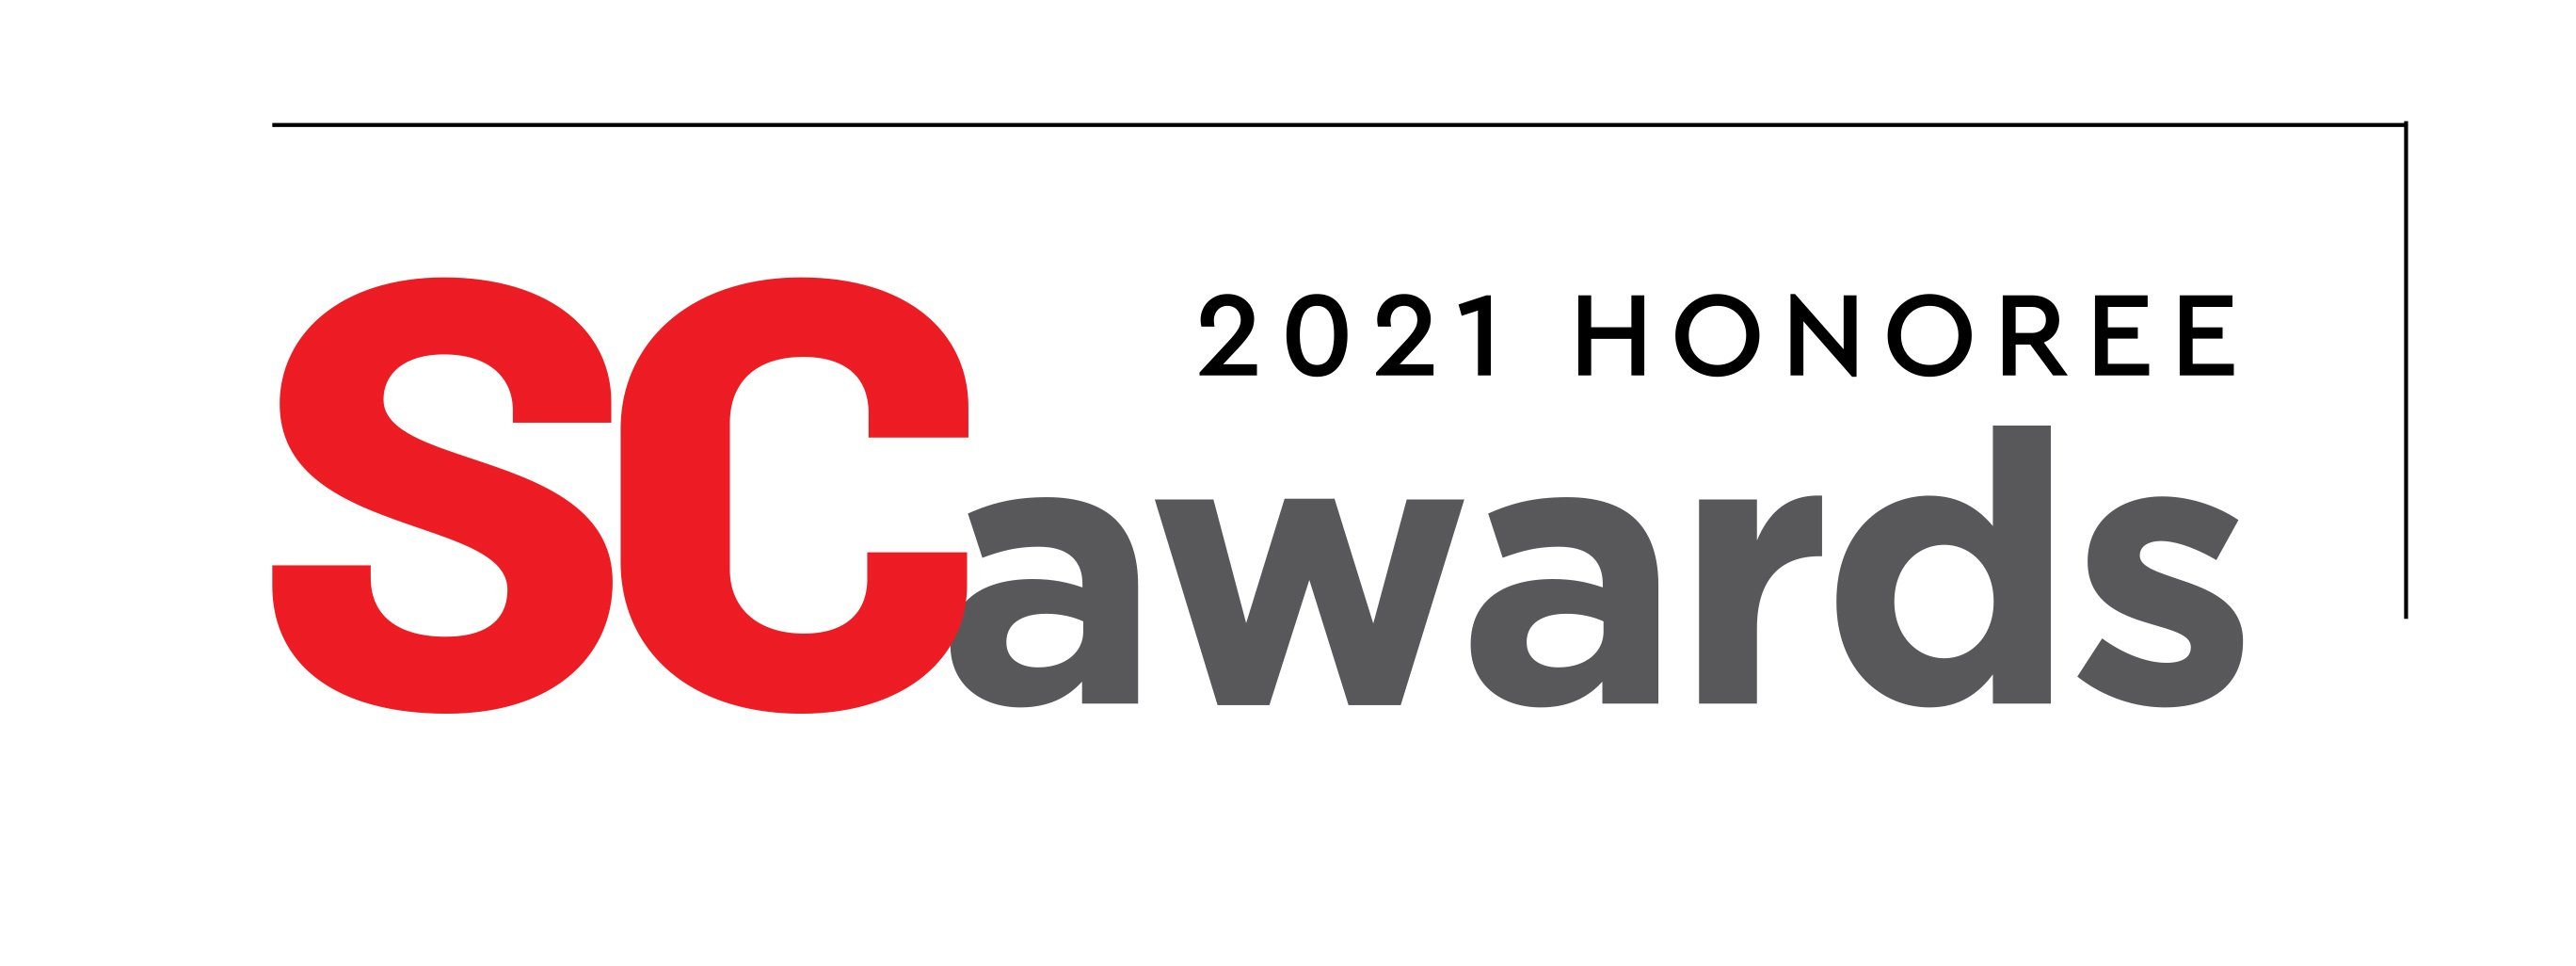 SCAwards_Honoree2021